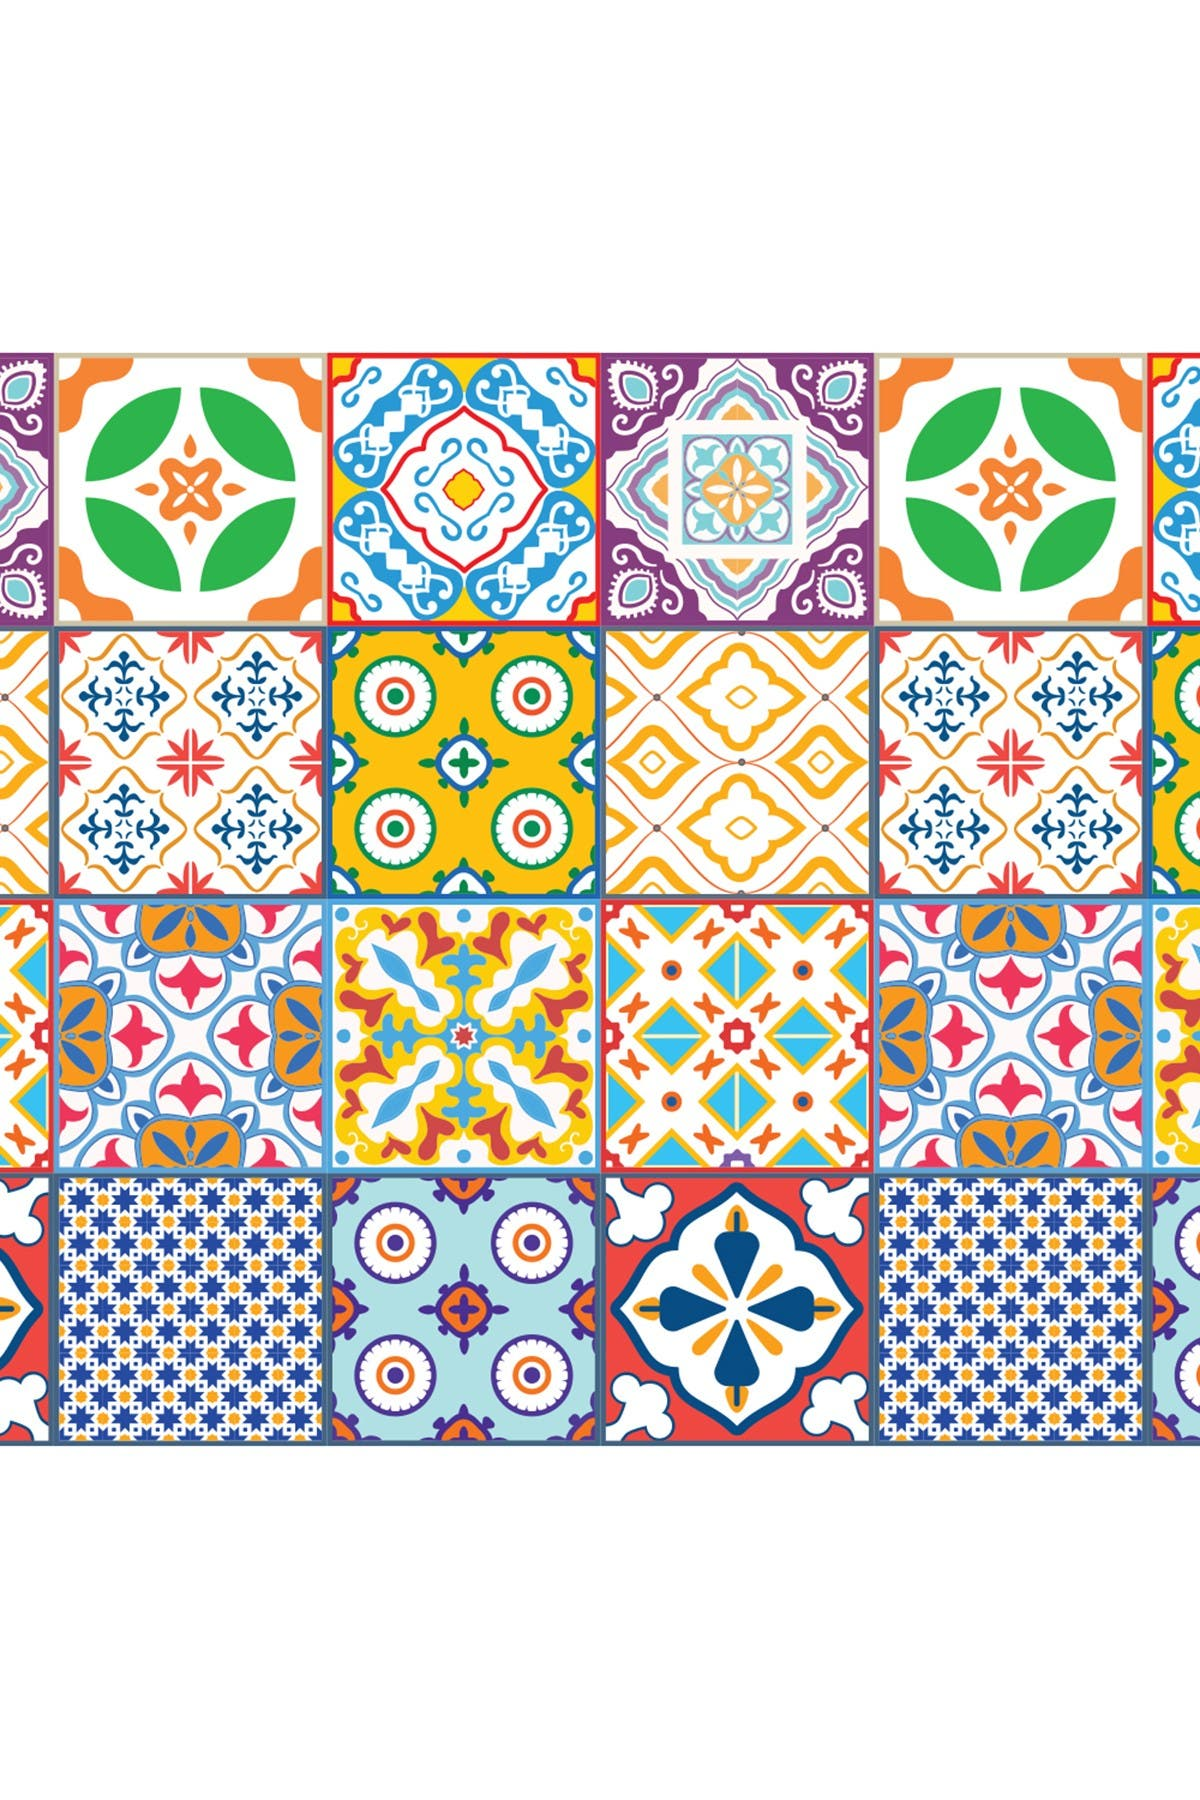 Image of WalPlus Classic Mediterranean Colorful Mixed Tiles Wall Stickers - 6 x 6 inches - 24 Pieces